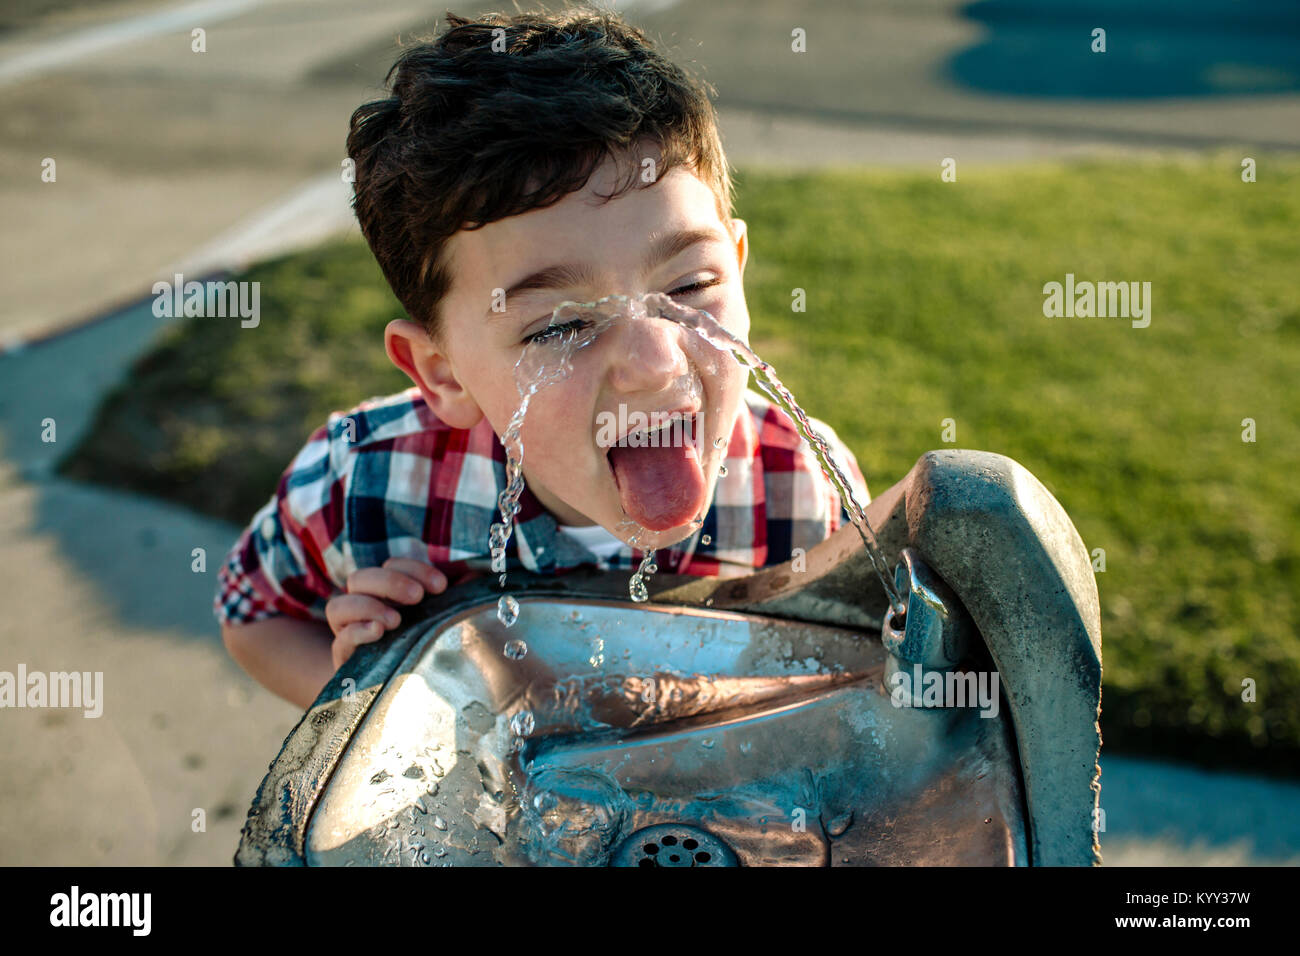 High angle view of playful boy drinking water from fountain - Stock Image